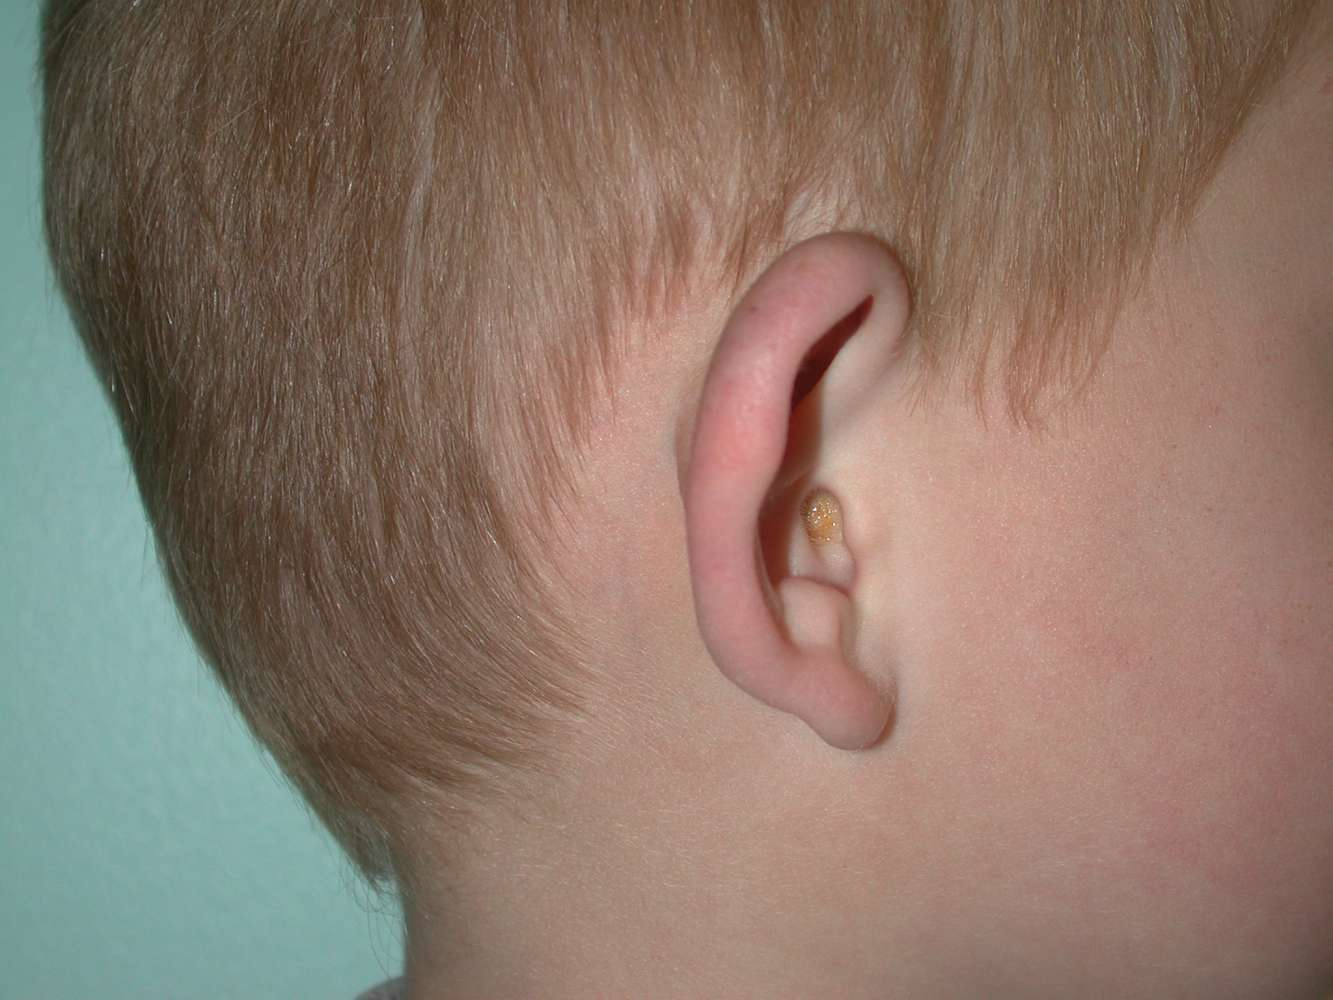 Ear correction in children